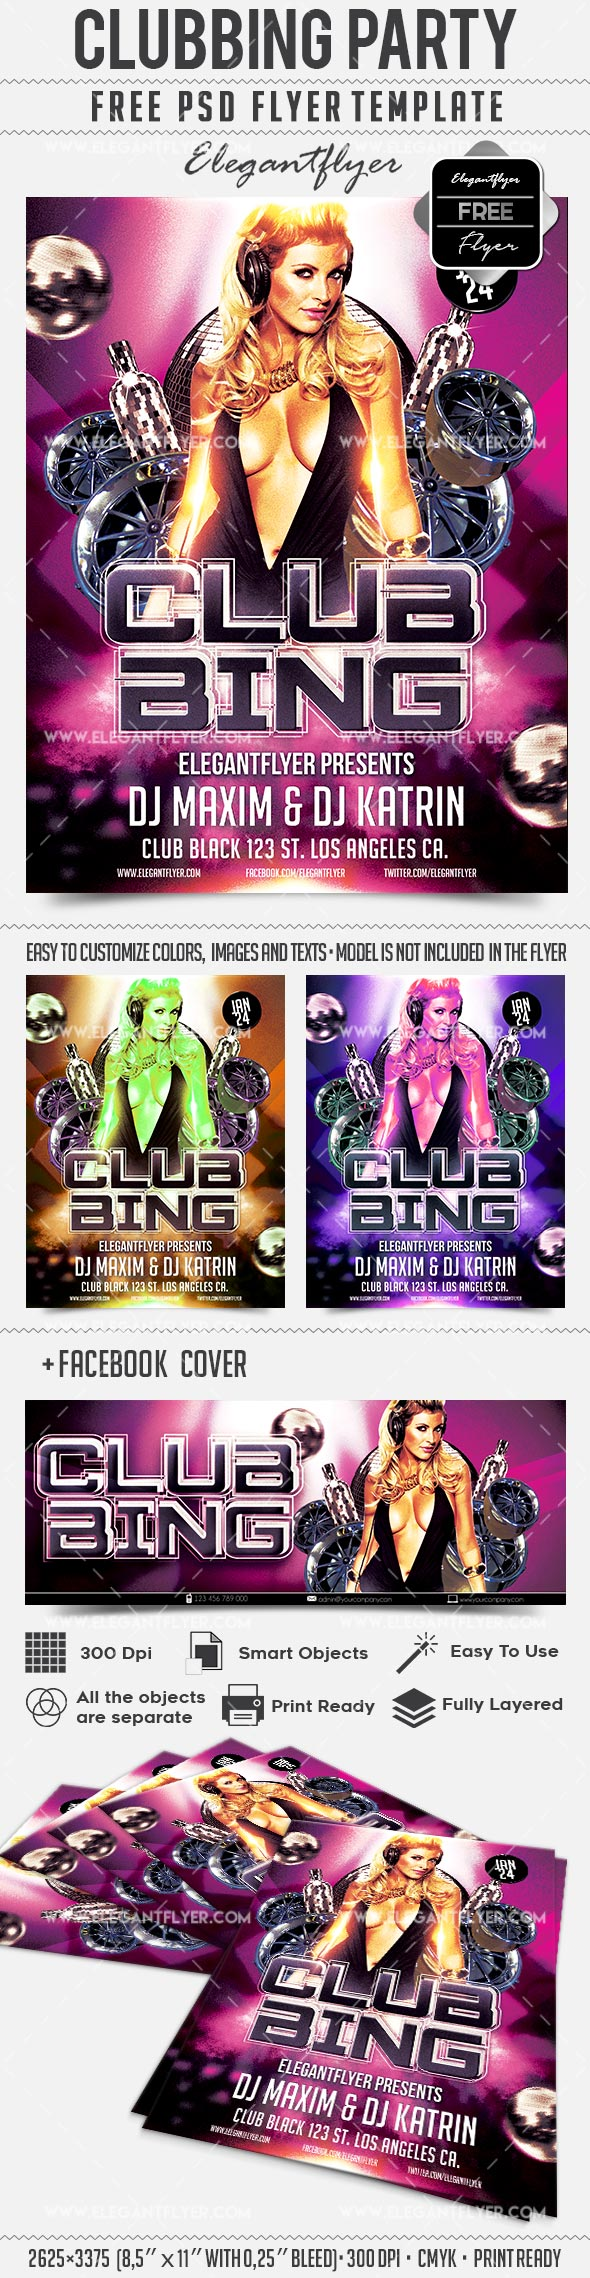 clubbing party free flyer psd template pinterest psd templates